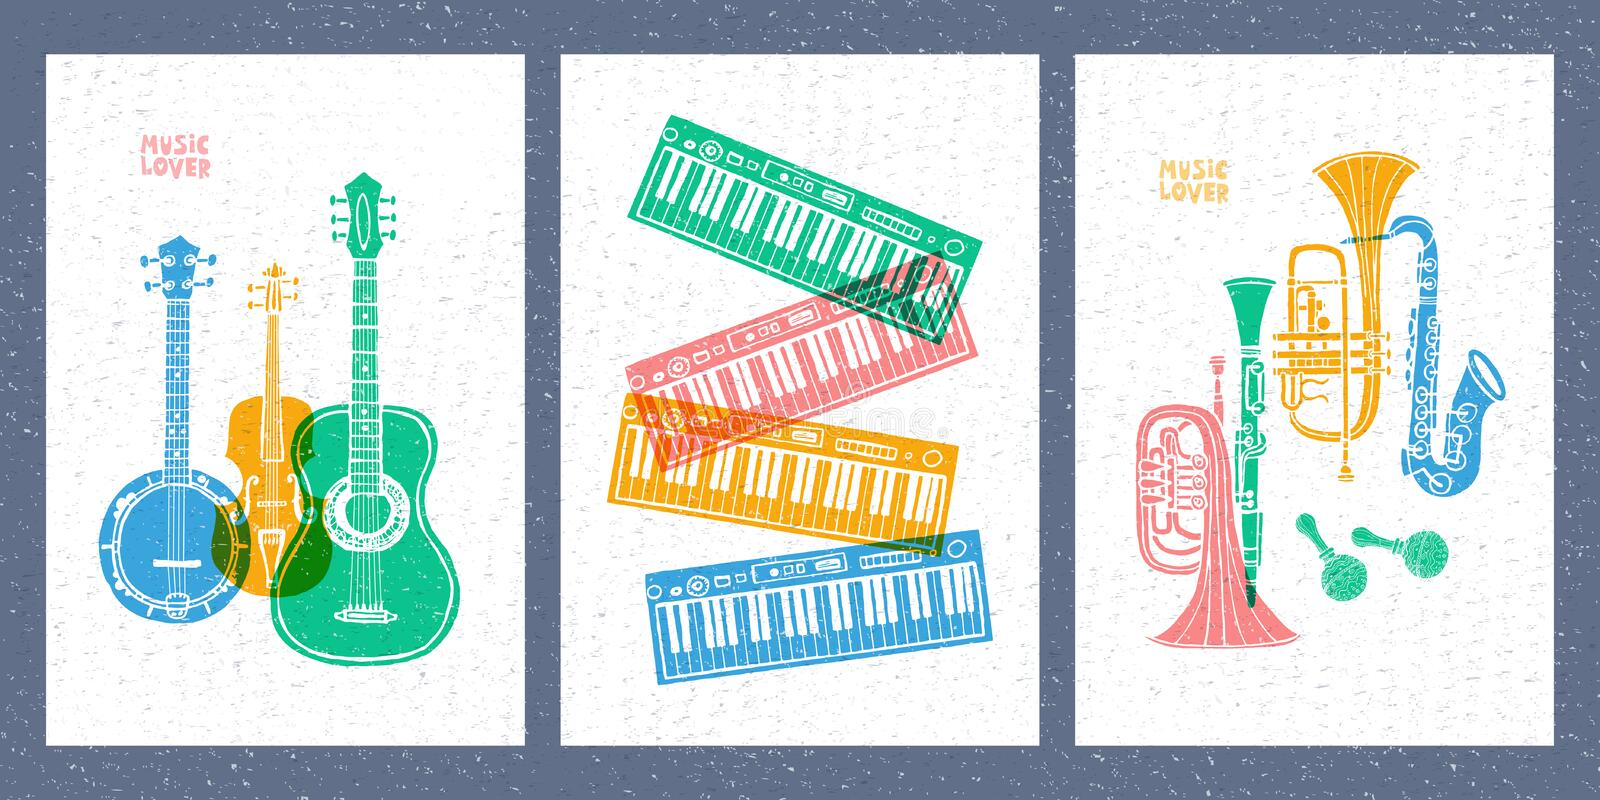 Musical instruments, guitar, fiddle, violin, clarinet, banjo, trombone, trumpet, saxophone, sax. Hand drawn vector illustration. Musical instruments, guitar royalty free illustration